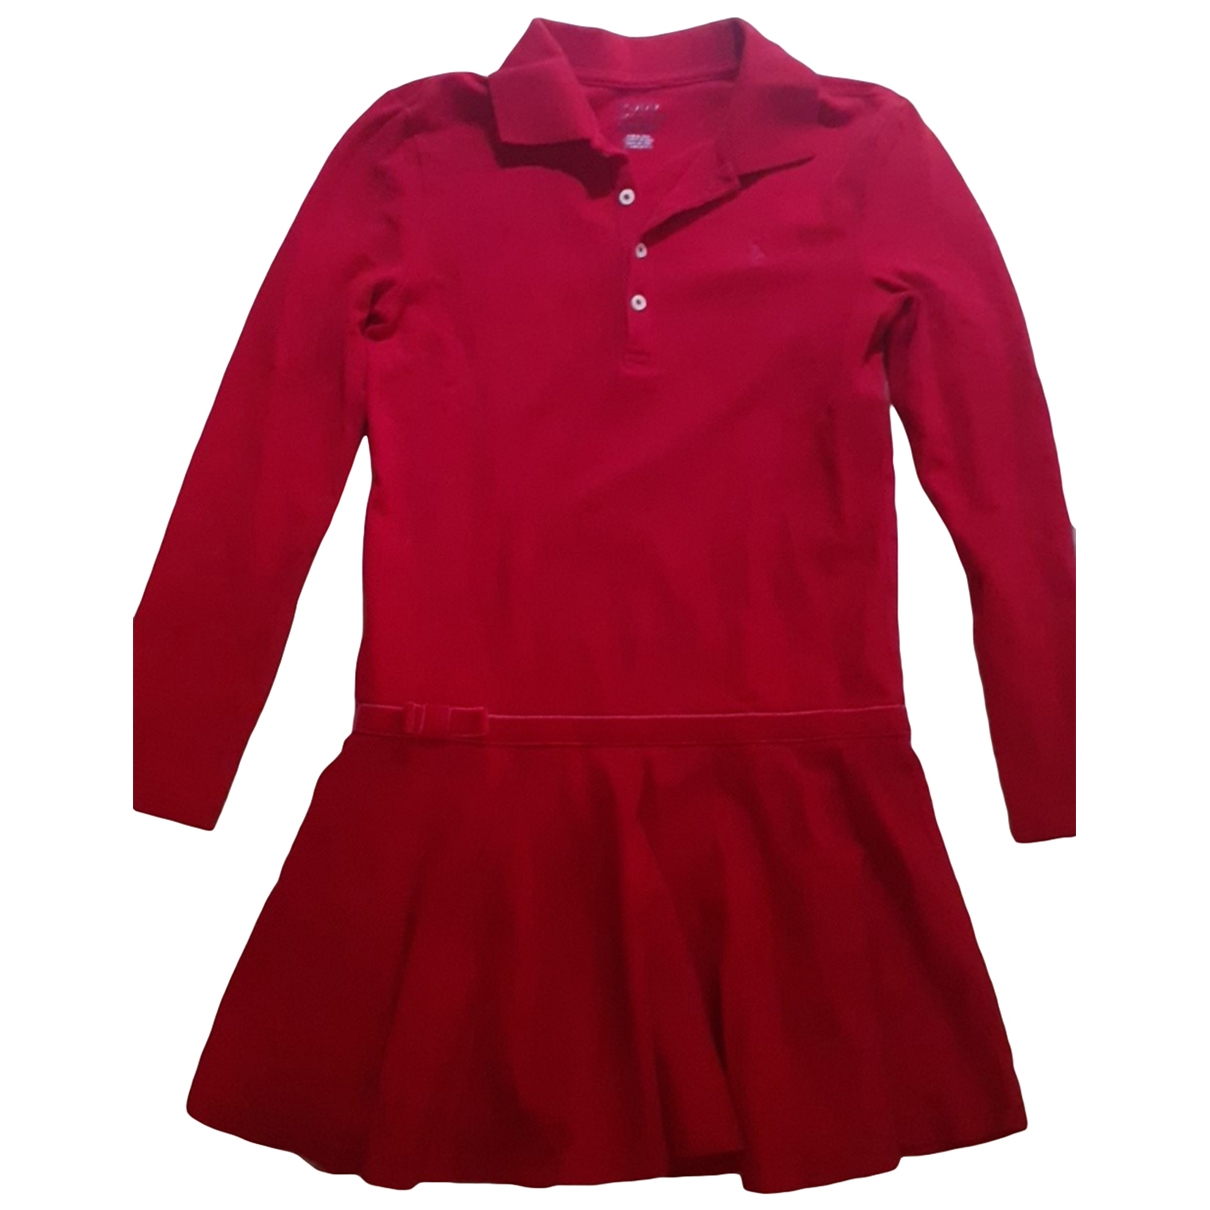 Polo Ralph Lauren \N Red Cotton dress for Kids 8 years - up to 128cm FR